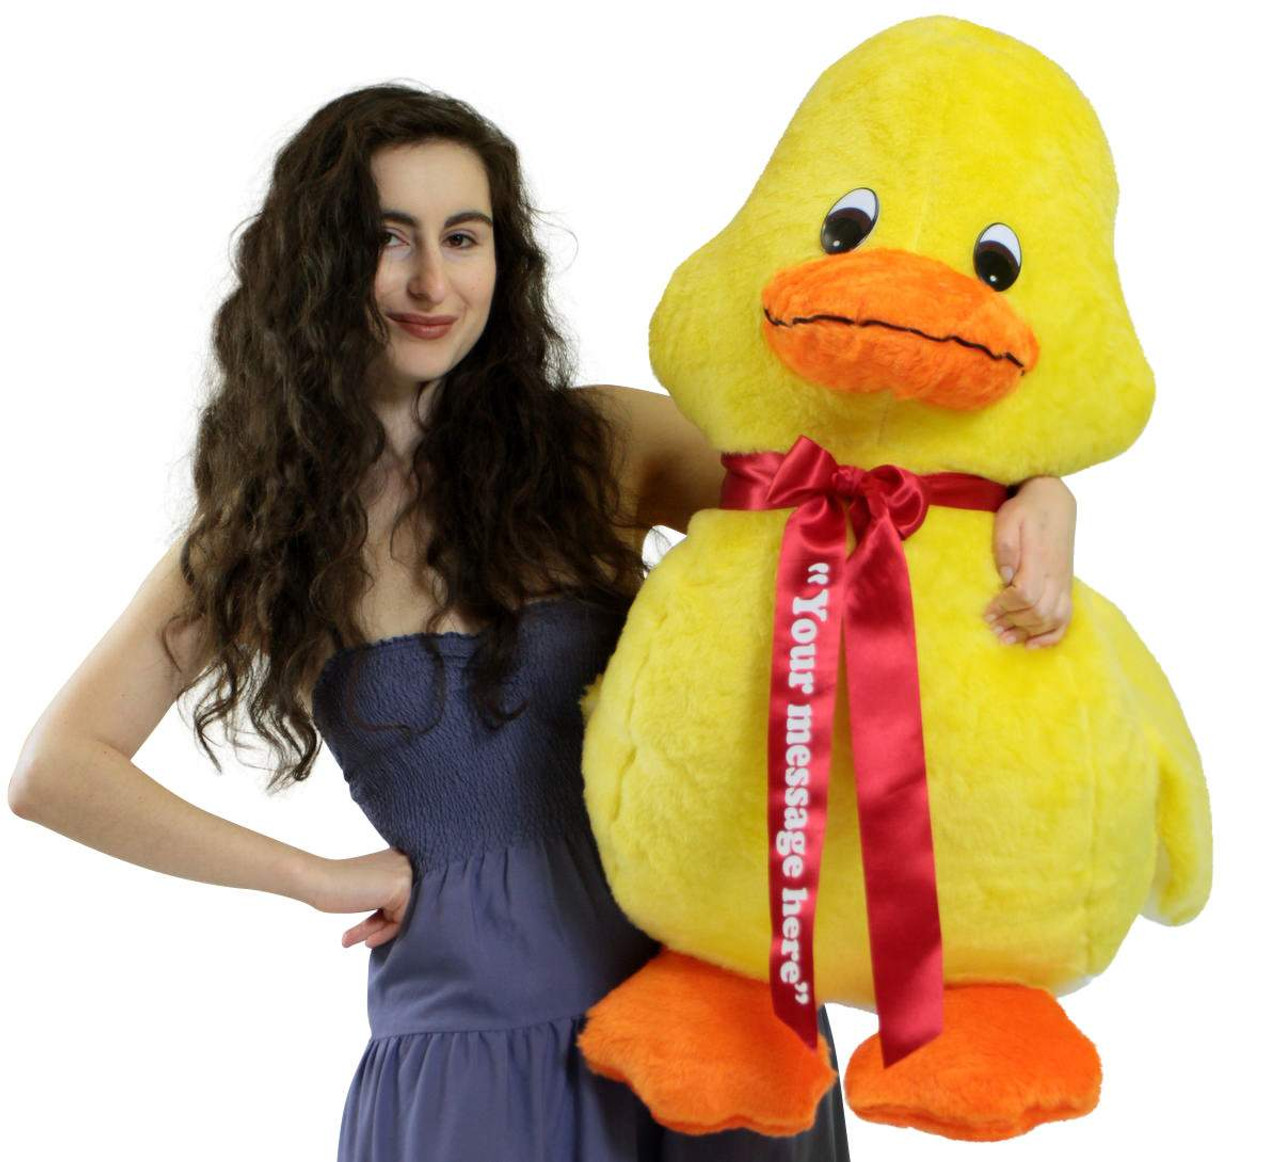 Personalized American Made Giant Stuffed Yellow Duck 36 Inches Soft